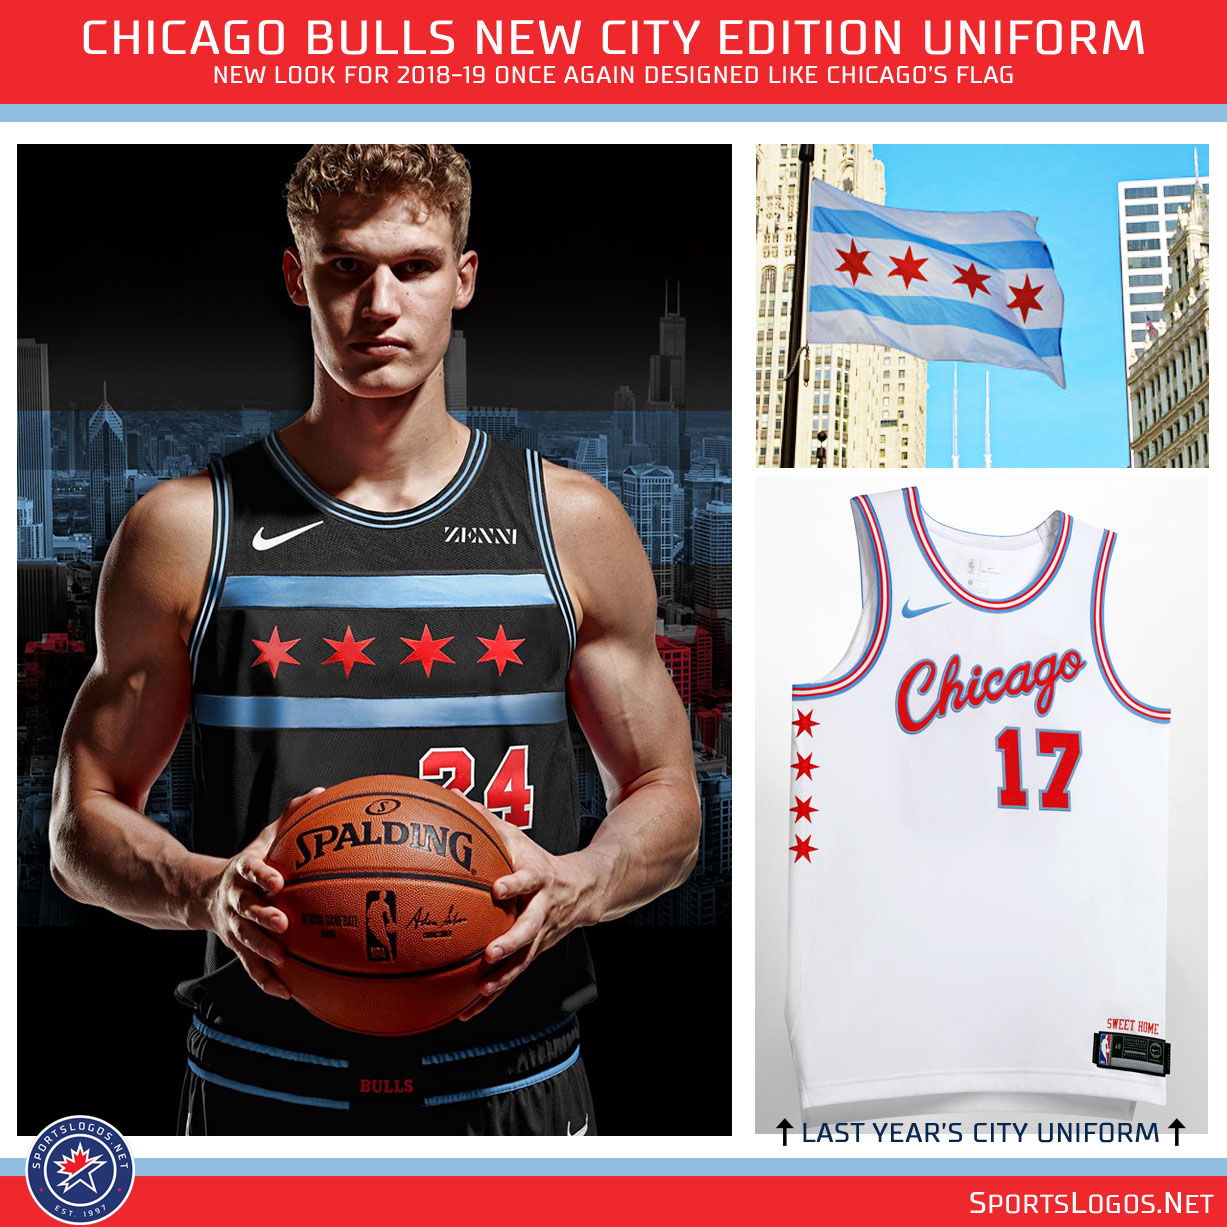 """911299d66 ... the new """"City Edition"""" uniform unveiled this afternoon by the Chicago  Bulls who for the second season in a row have opted to design a new uniform  based ..."""